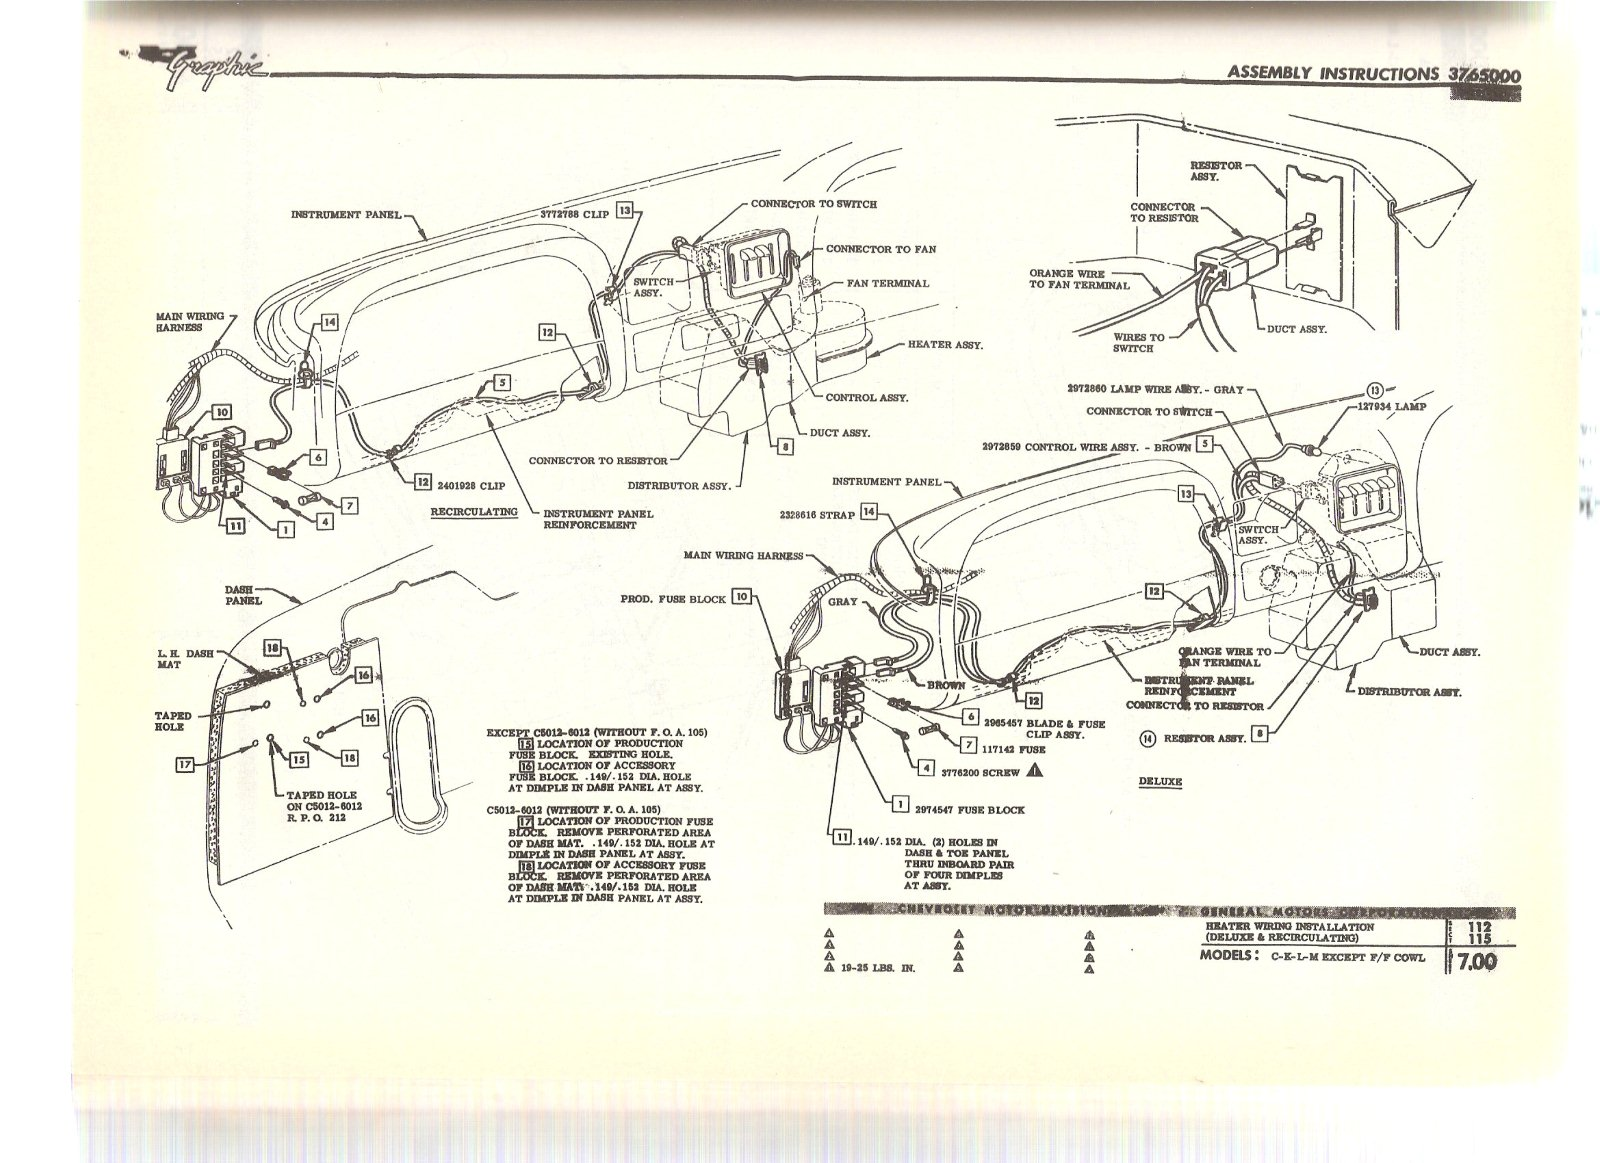 1960 1961 Wiring Diagram?resize\\\=840%2C611 1961 chevy apache wiring diagram wiring diagrams 61 apache wiring diagram at n-0.co